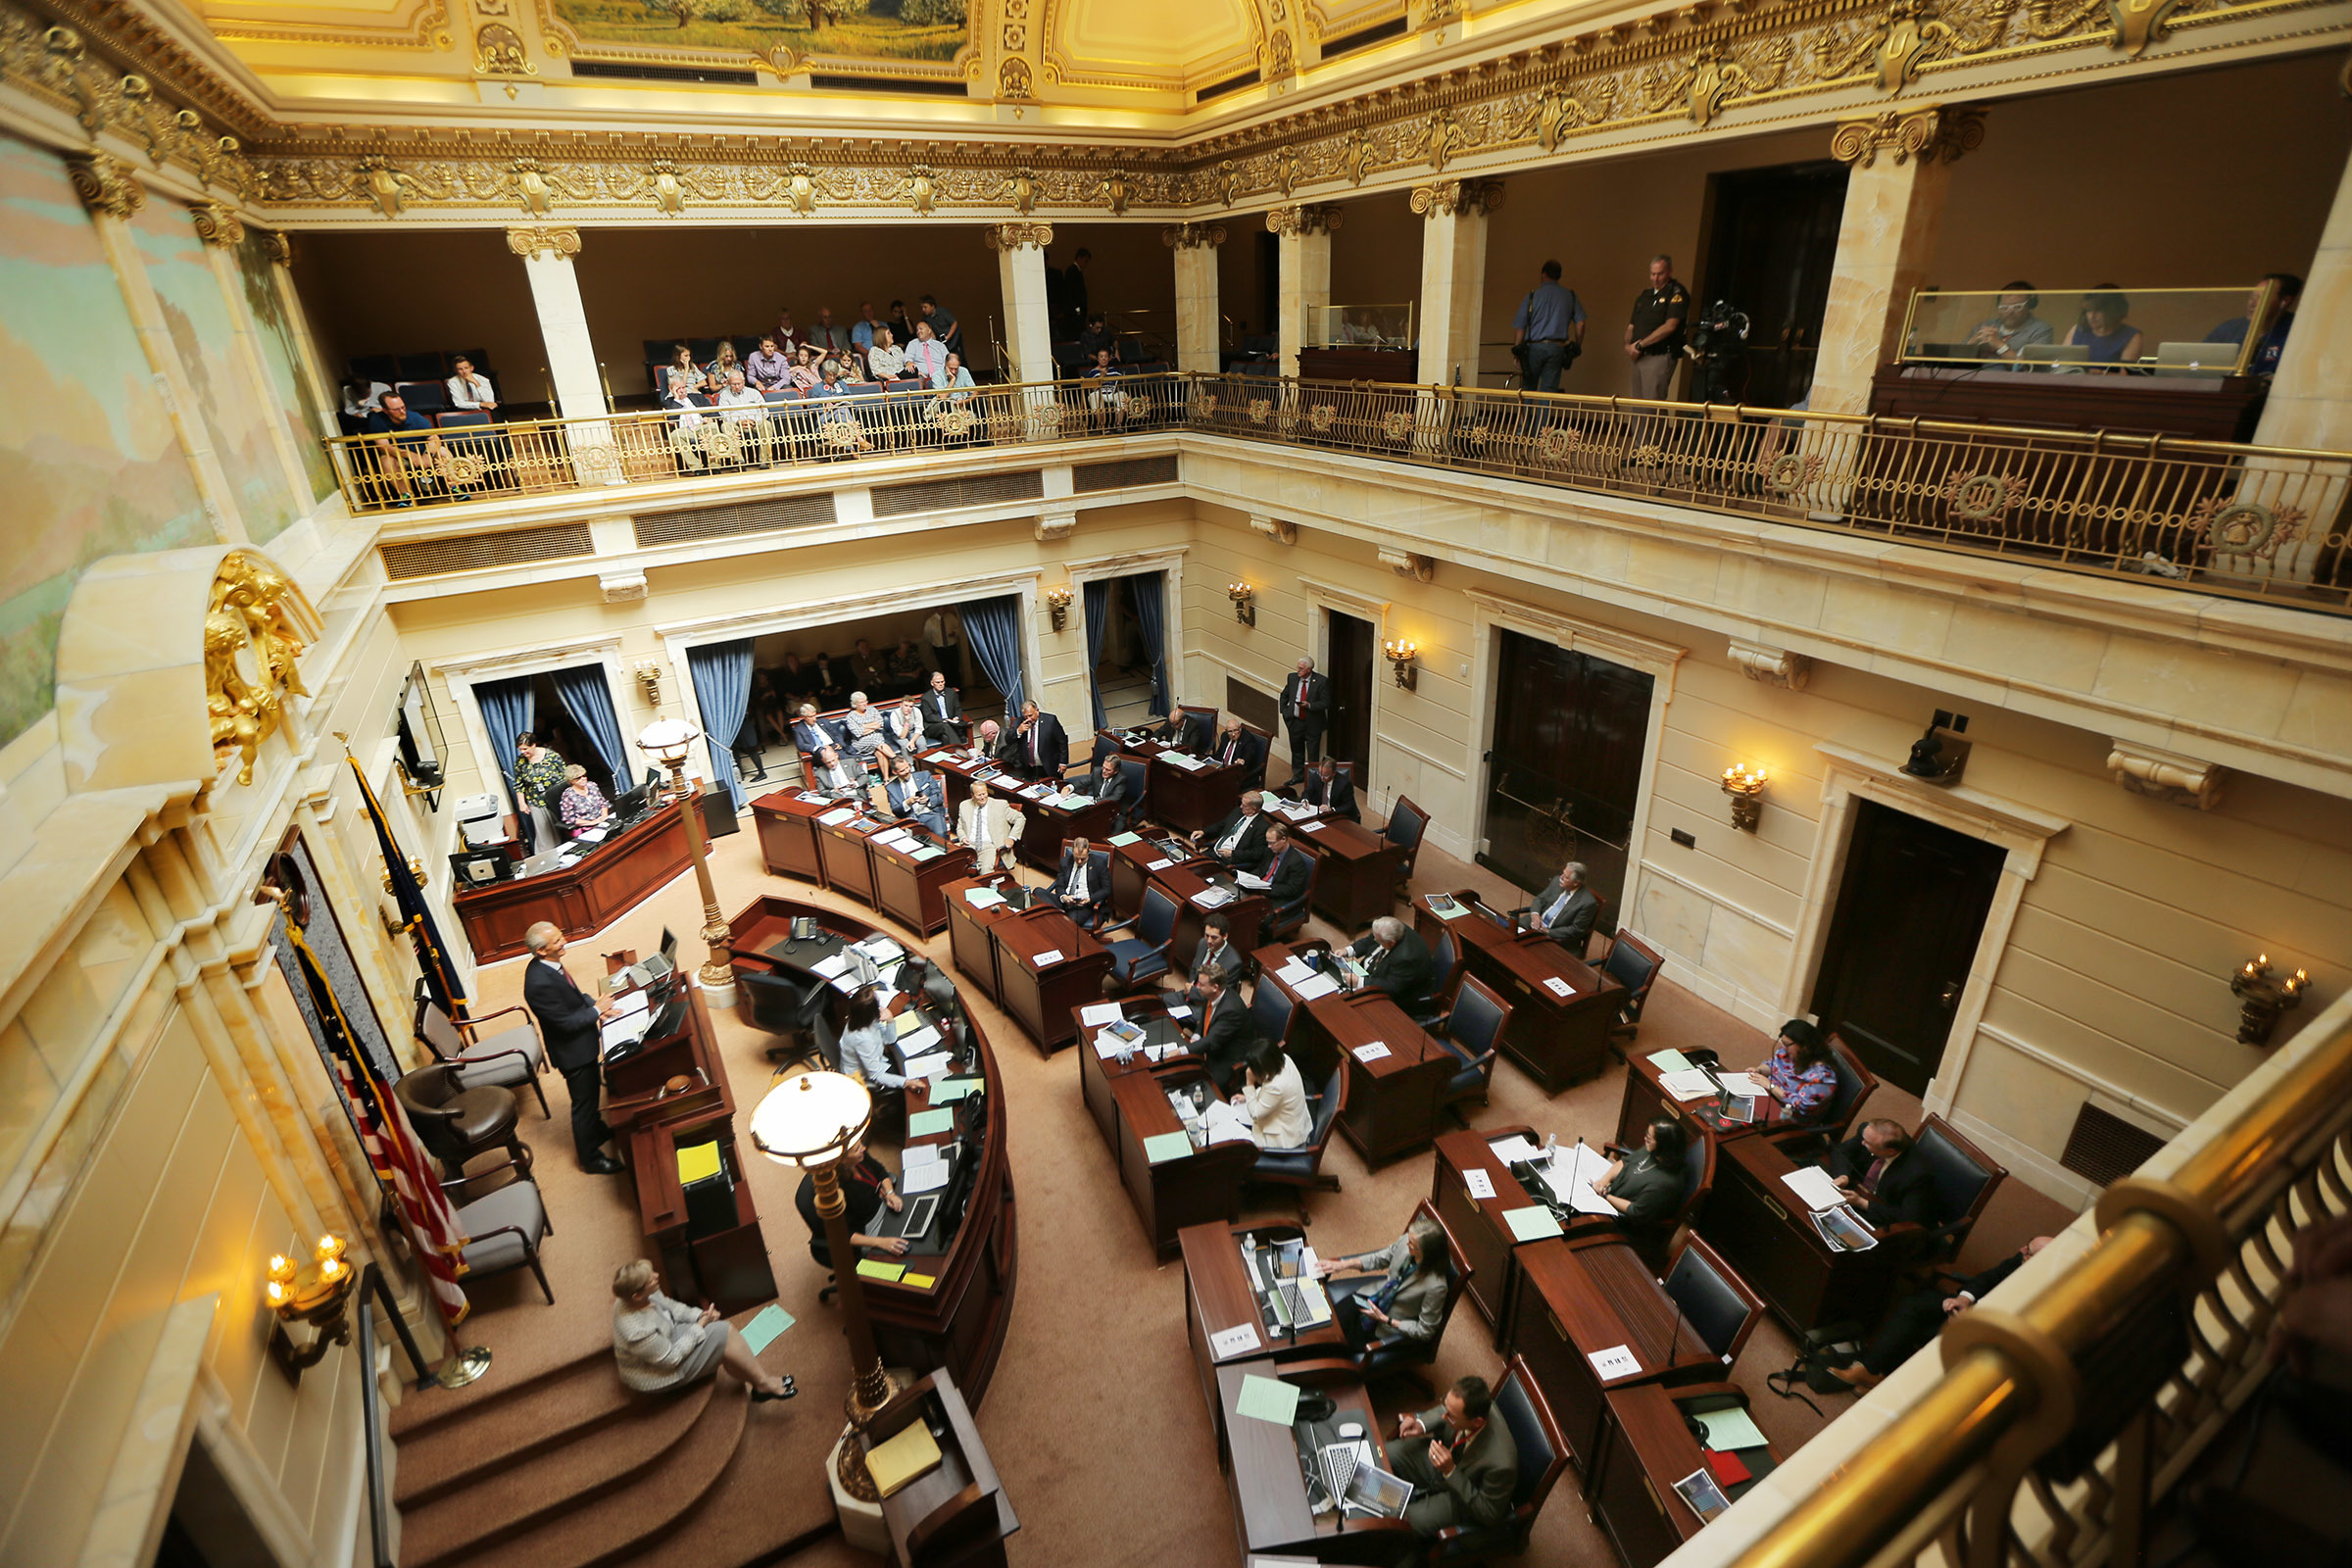 Members of the Senate gather for a special session of the Legislature at the Capitol in Salt Lake City on Wednesday, July 18, 2018.